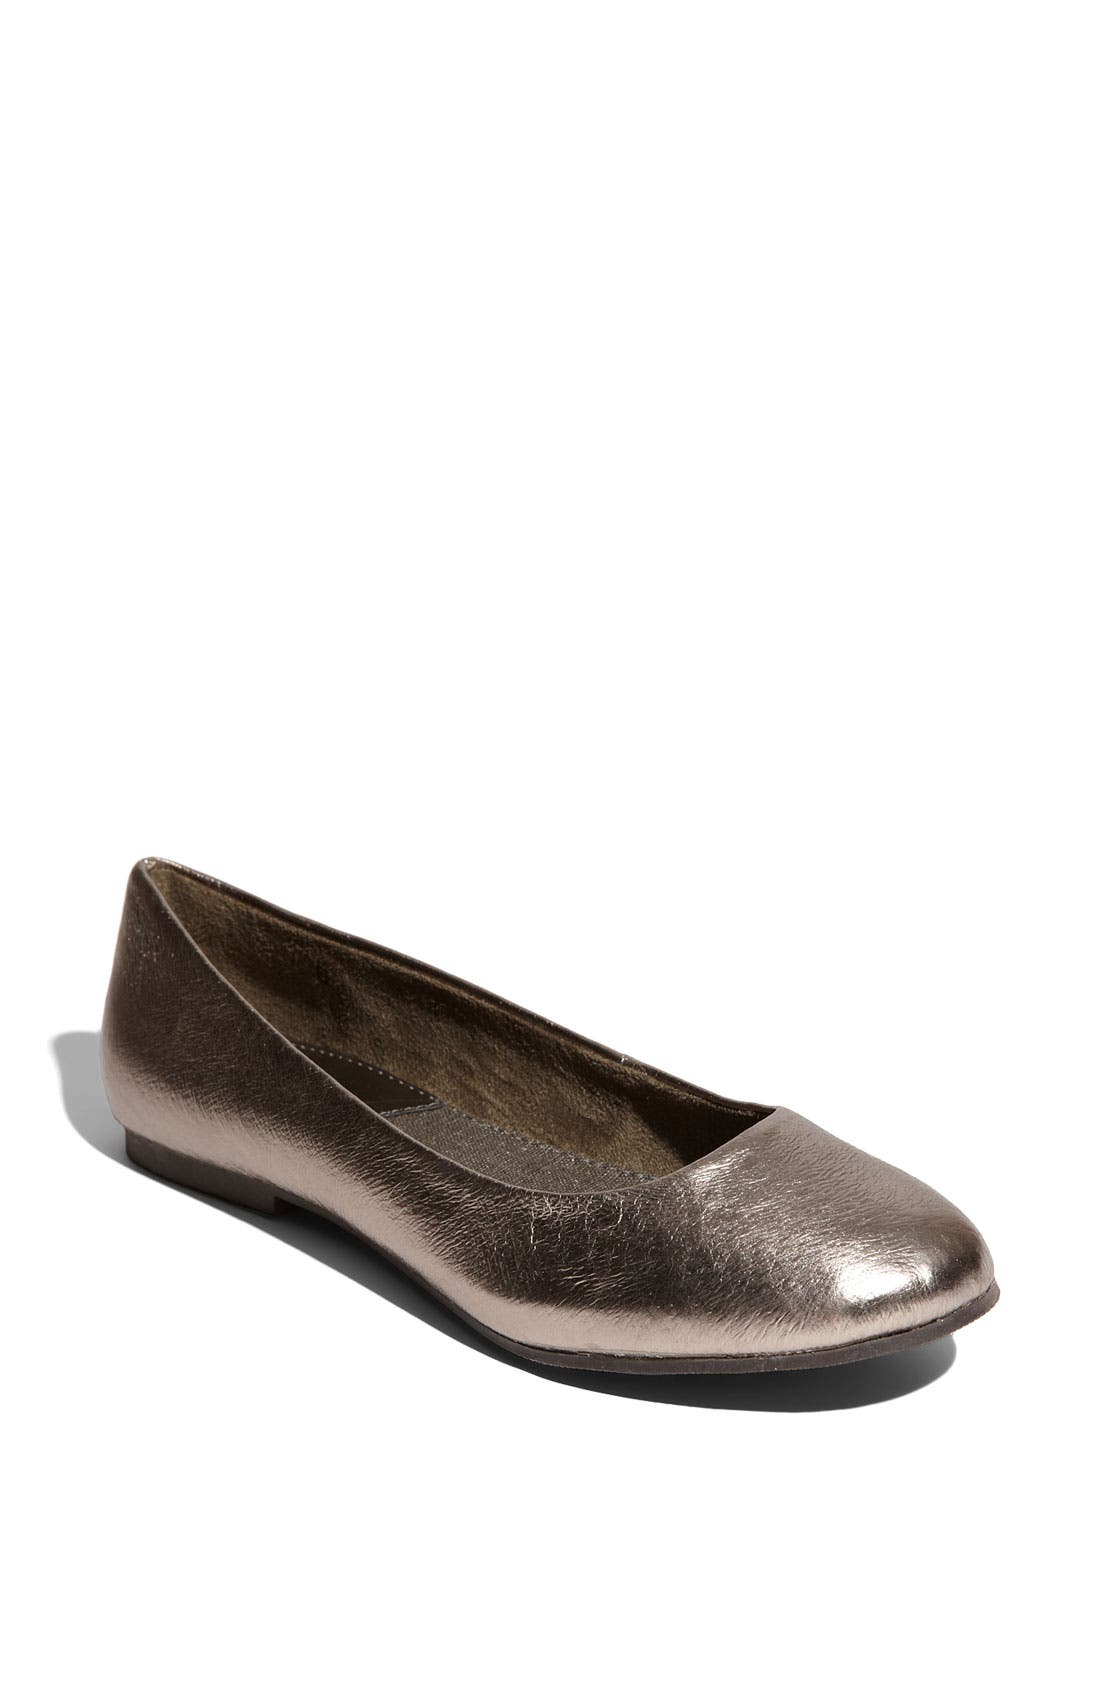 Alternate Image 1 Selected - BC Footwear 'Limousine' Flat